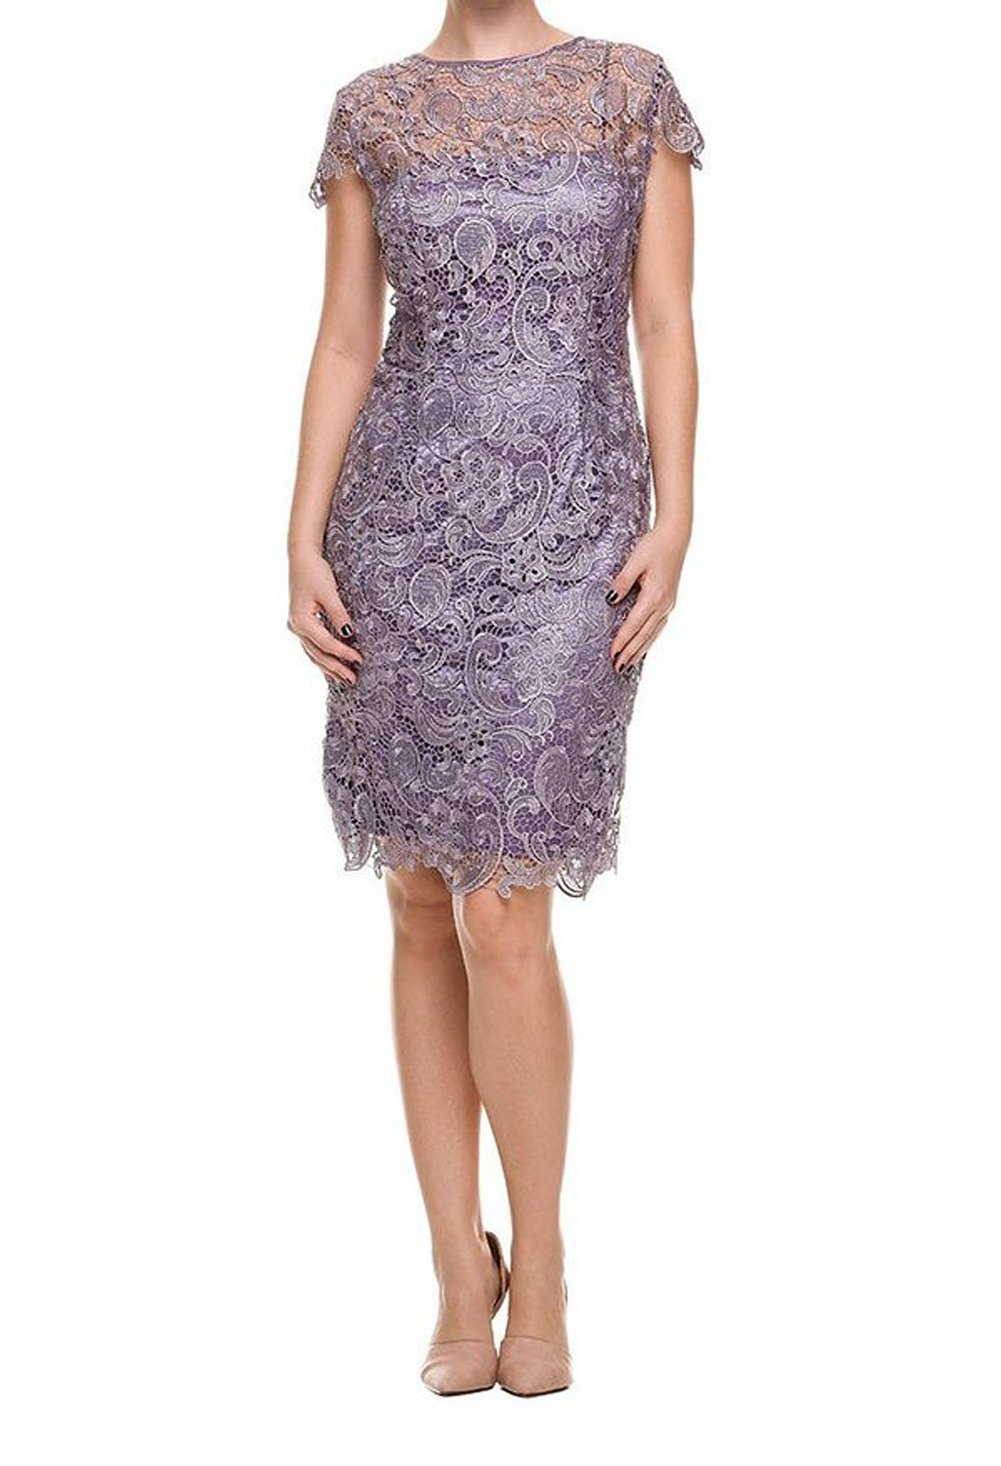 aaa65602bef3 Ruiyuhong Short Lace Prom Gown Cap Sleeve Mother of The Bride Dress  (12,Lilac)